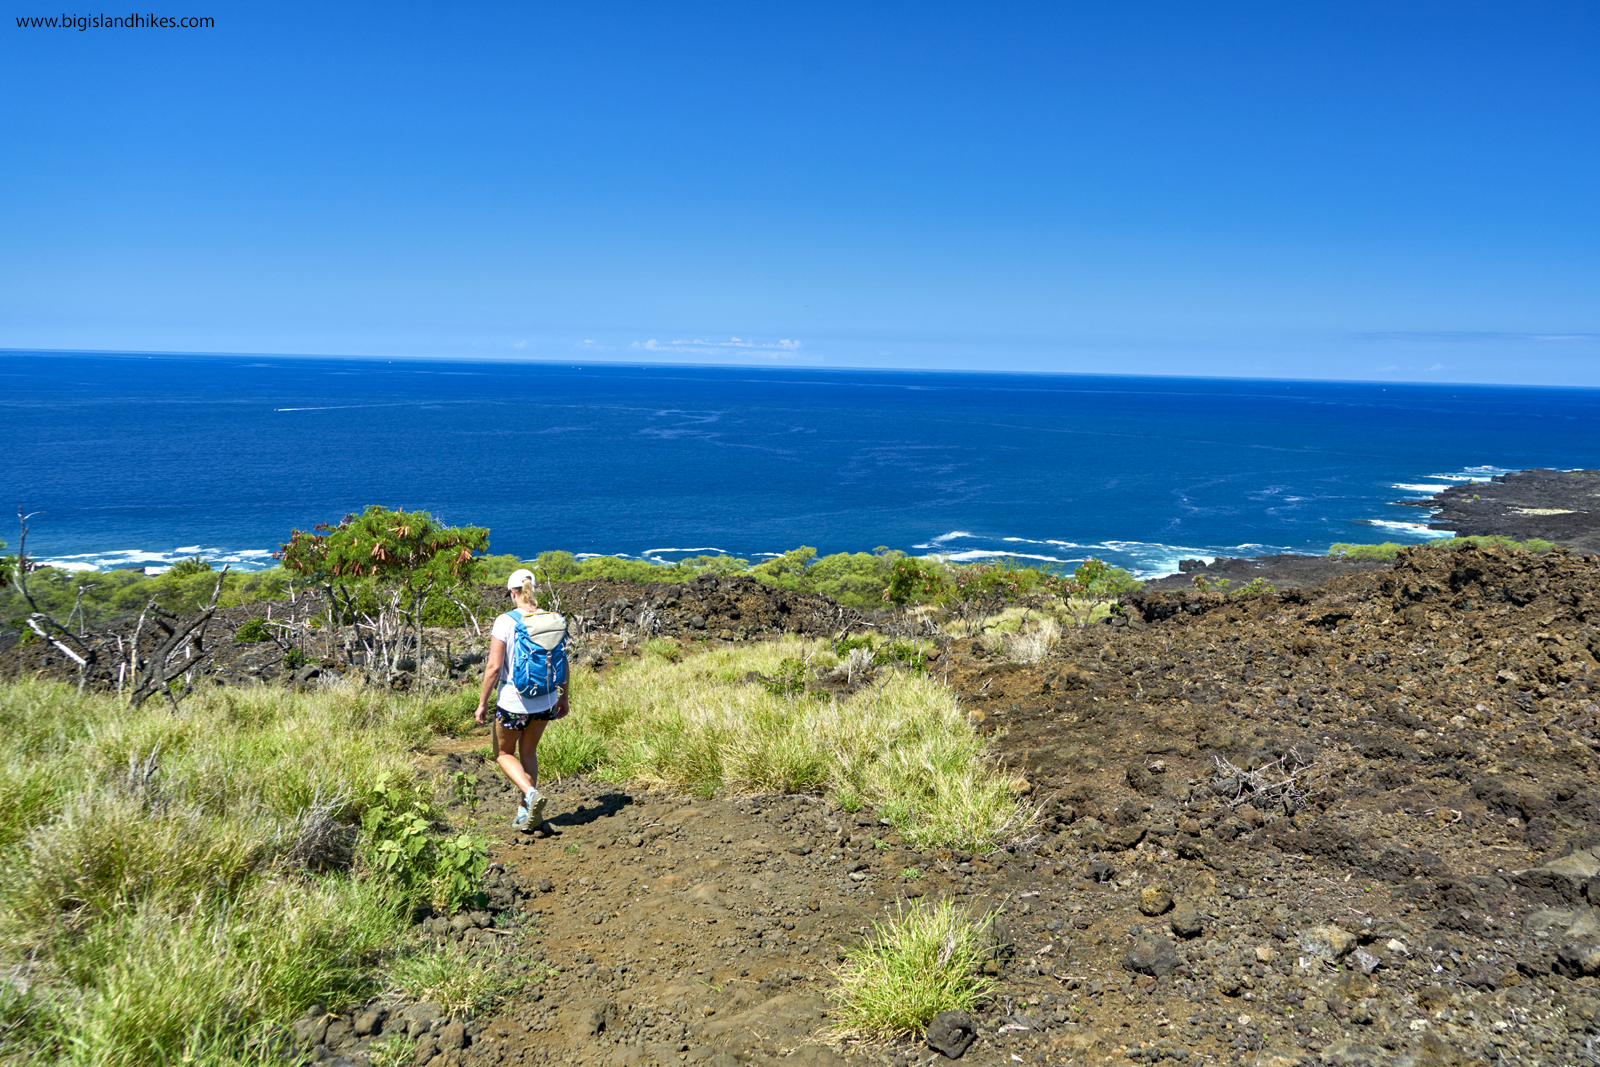 Hiking above the Sea to Kealakekua